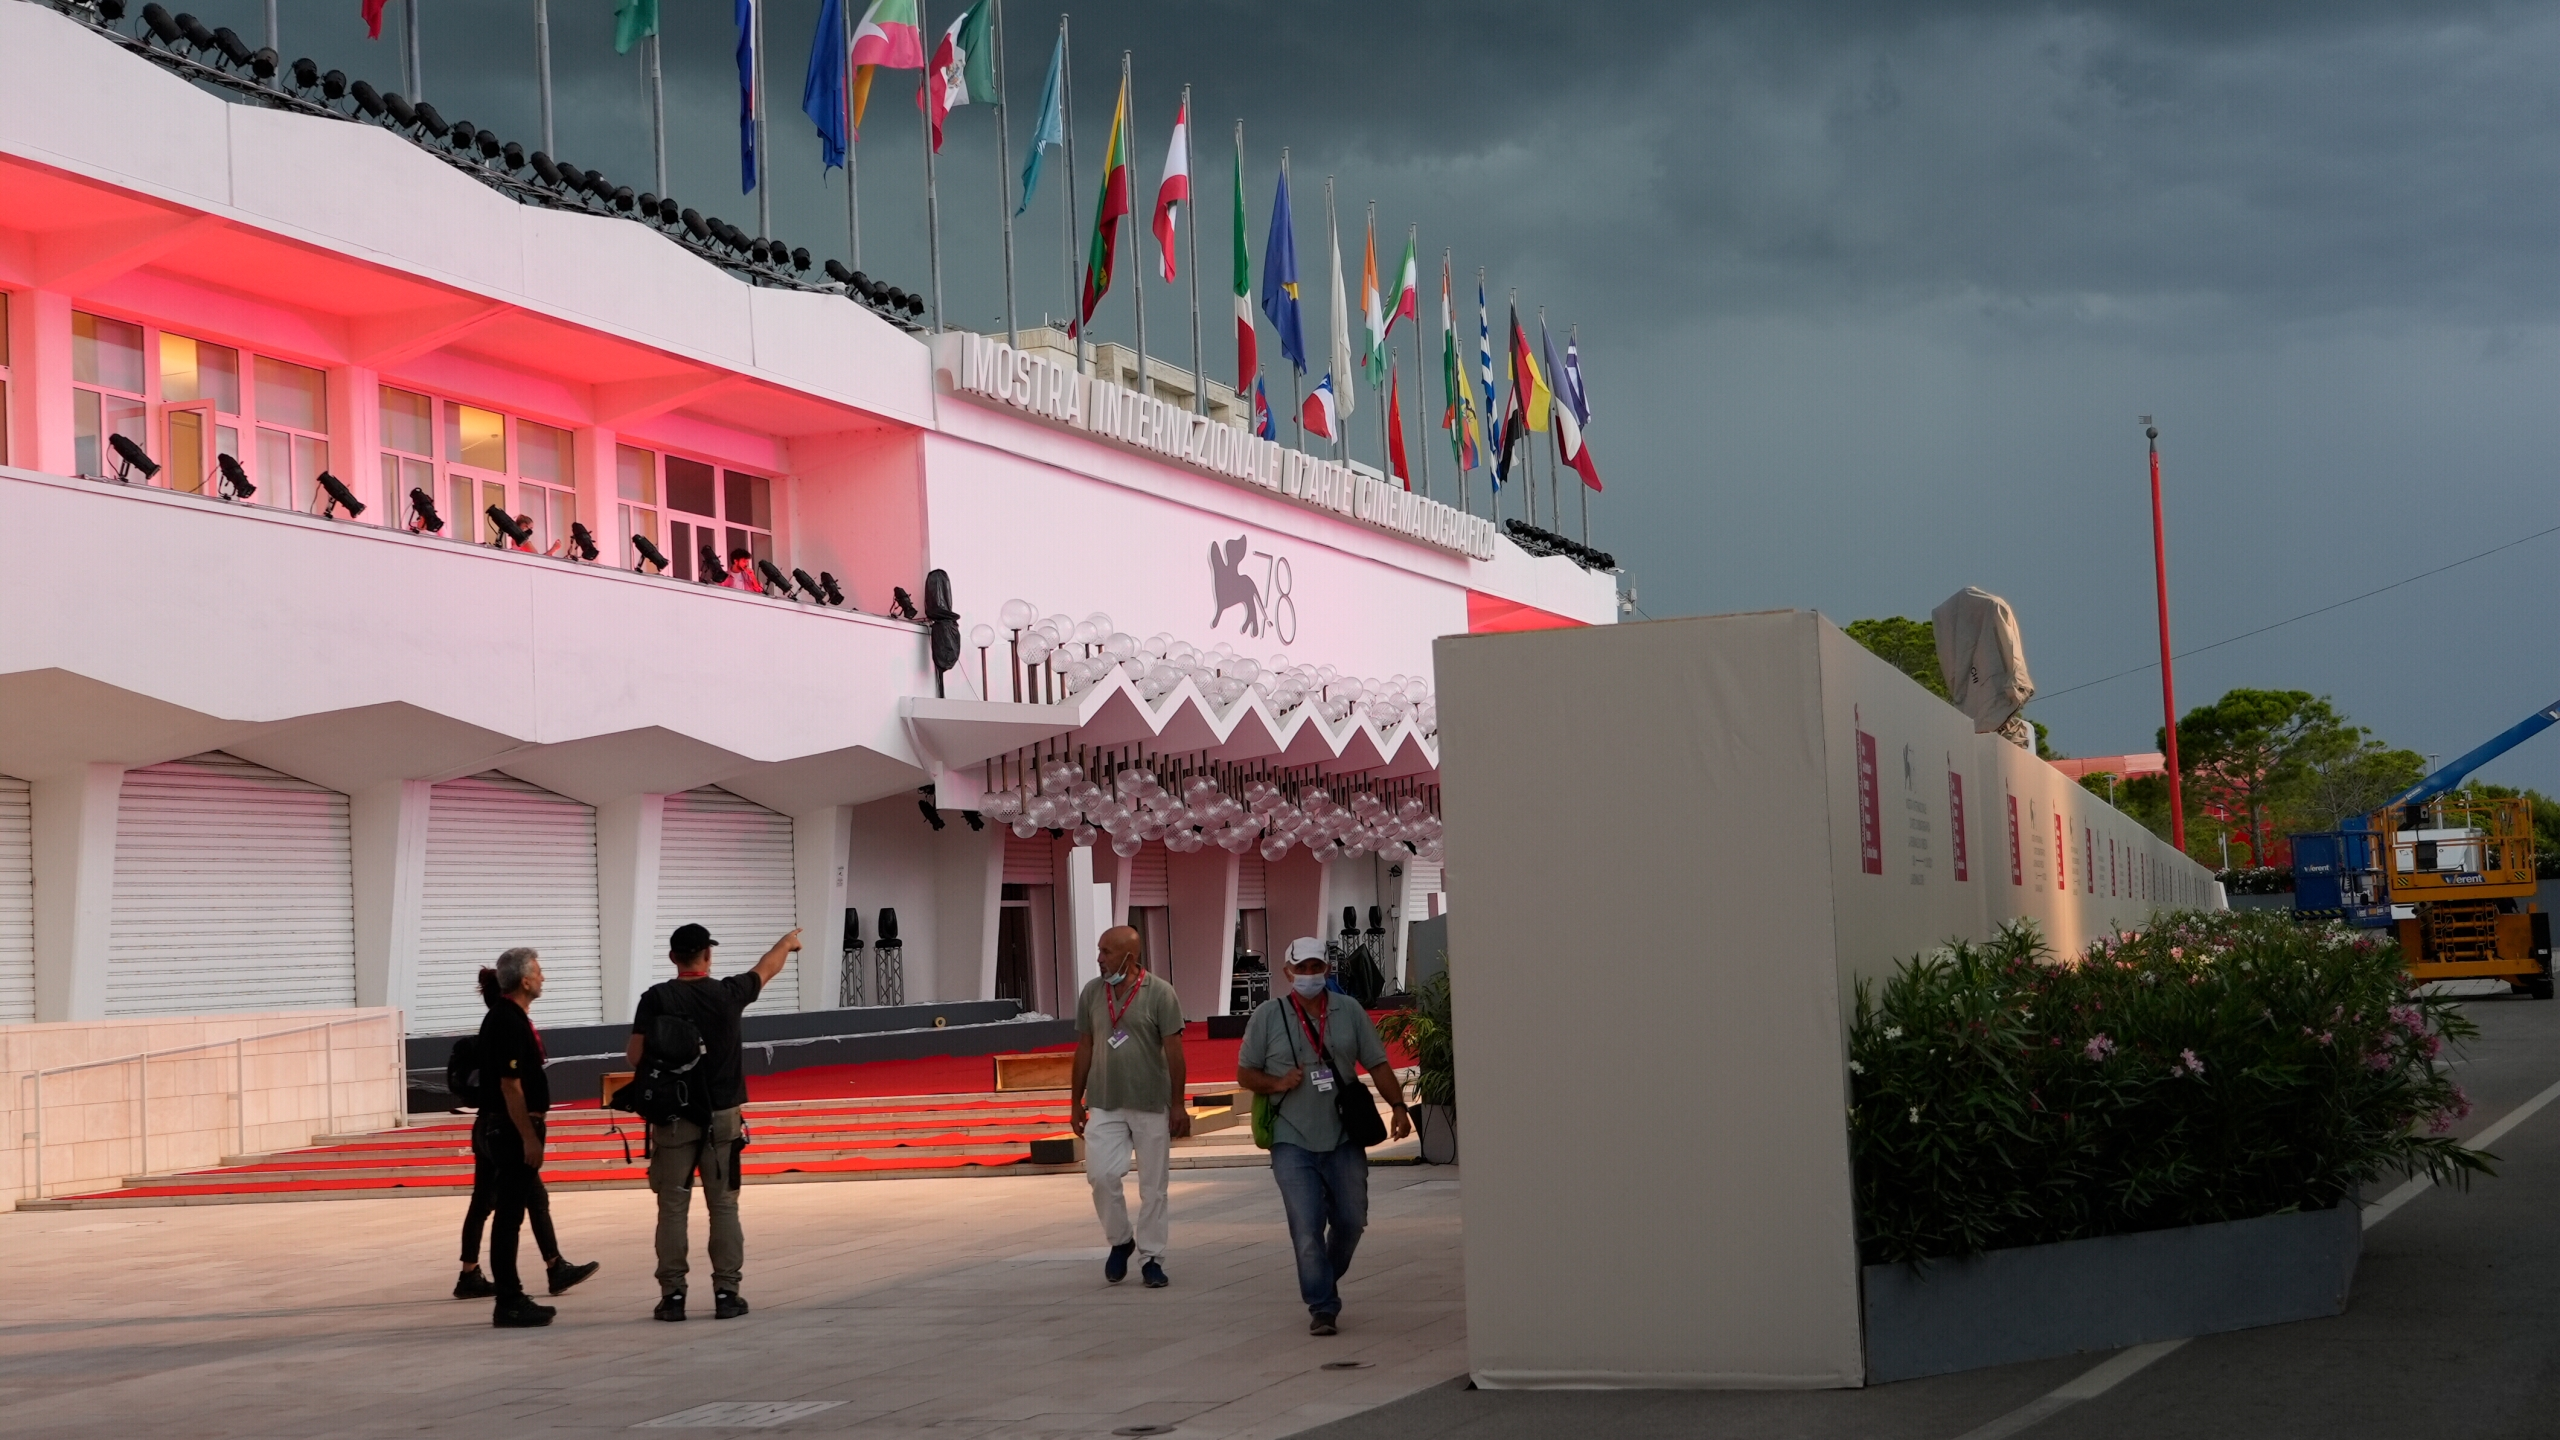 Workers walk by a wall hiding the red carpet of the 78th edition of the Venice Film Festival from the view of the public at the Venice Lido, Italy on Aug. 30, 2021. (Domenico Stinellis/Associated Press)